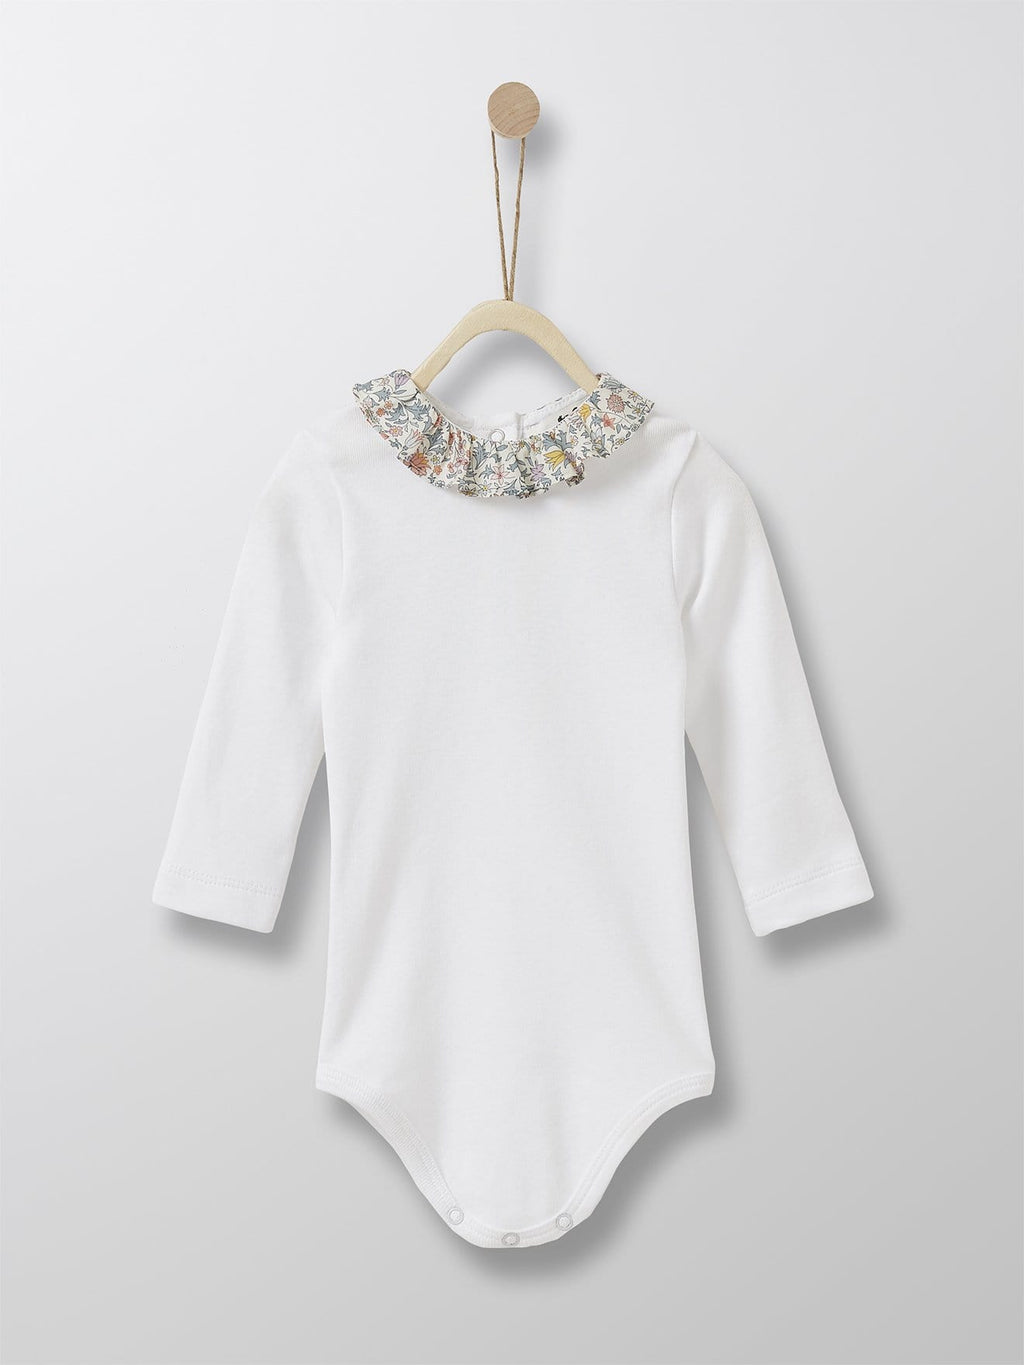 Cyrillus Paris | Bodysuit with Frill Collar | 100% Cotton | White + Liberty floral collar | 3M